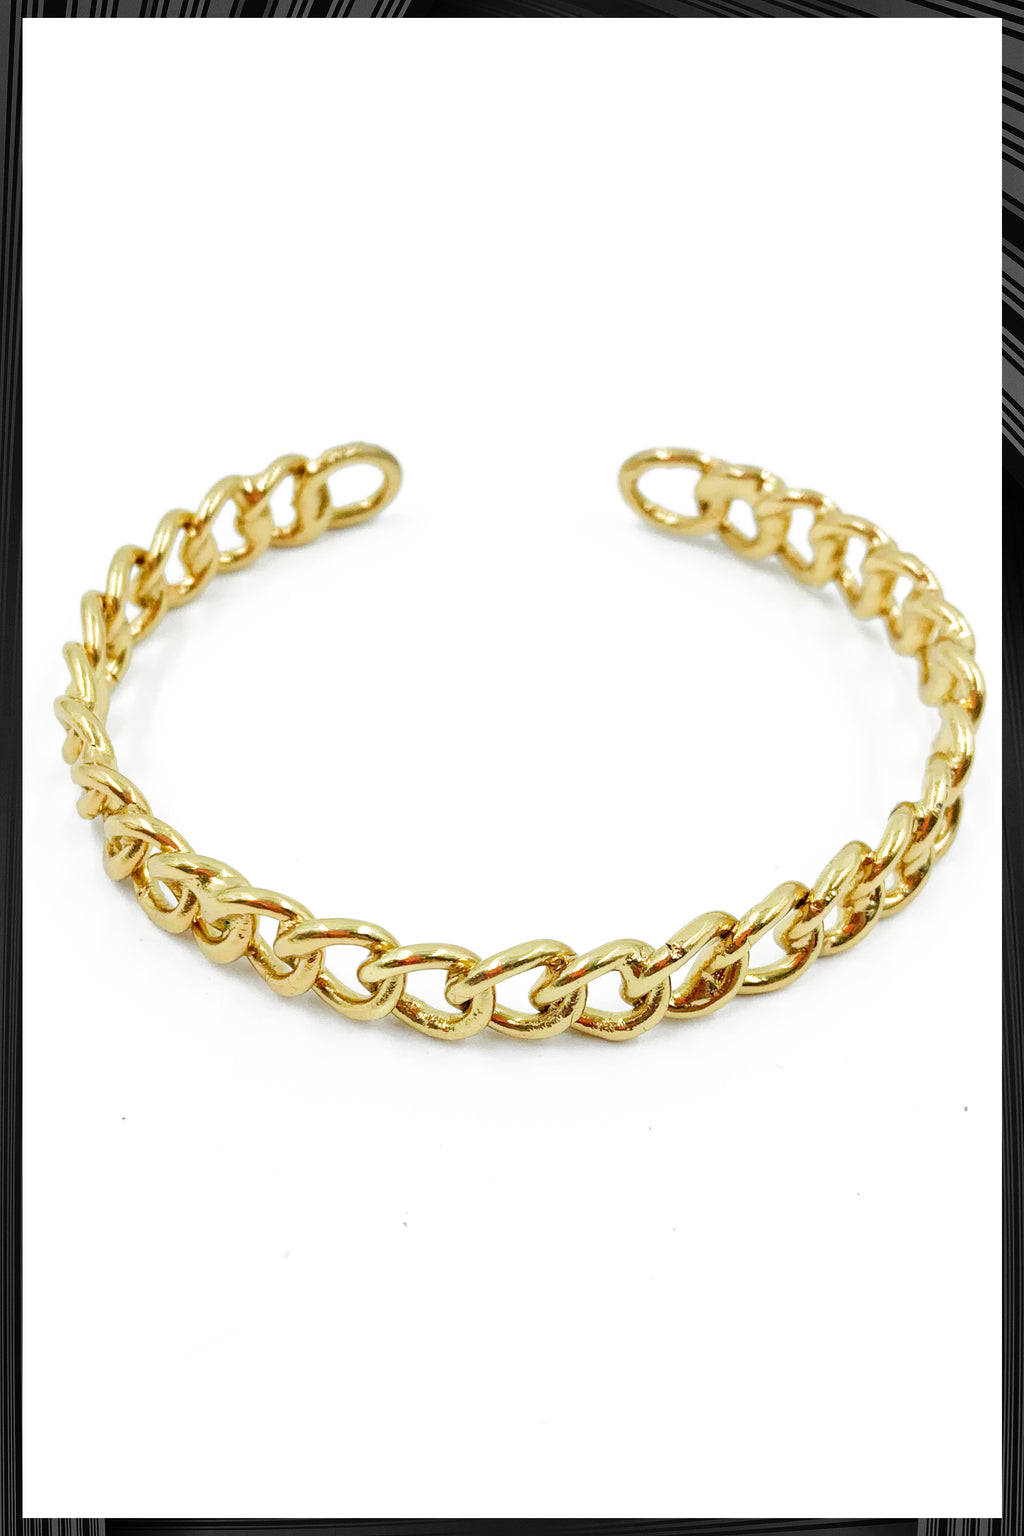 Galeon Bracelet | Free Delivery - Quick Shipping